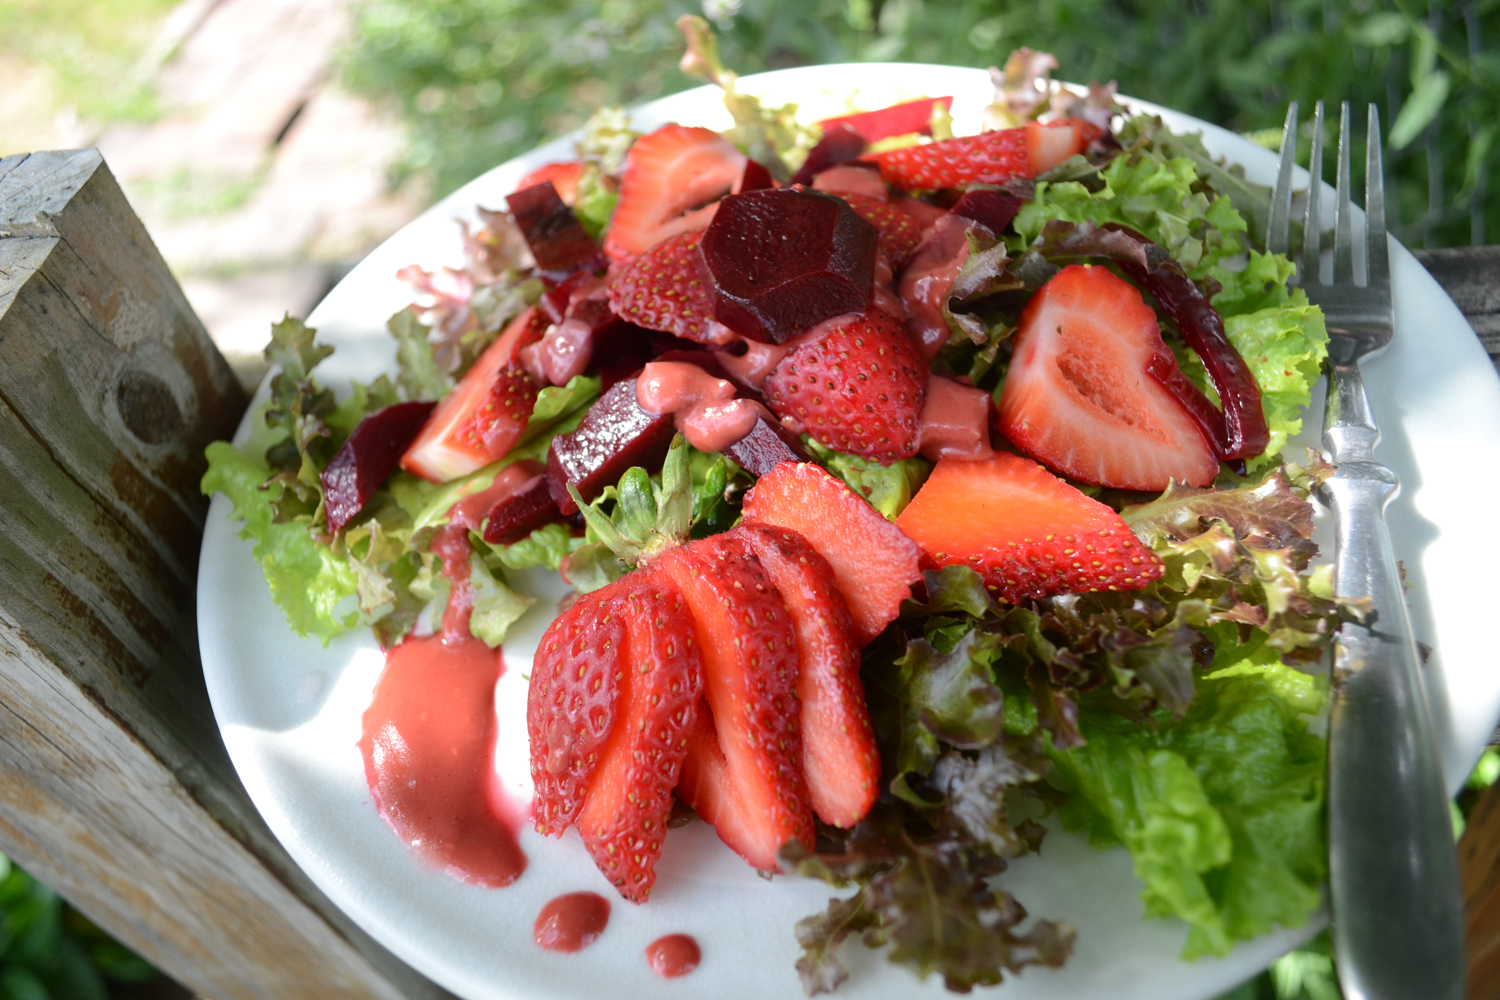 Strawberry and pickled beet salad recipe